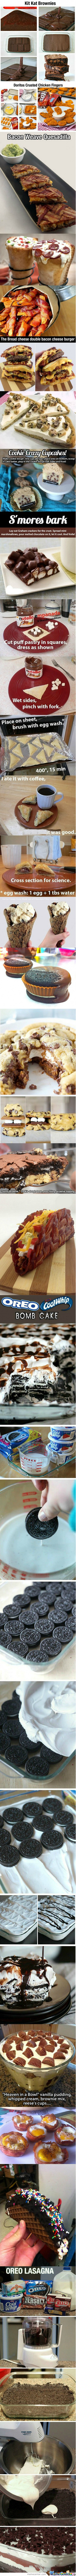 Some Of The Most Awsome Looking Food Creations - Thats What Heaven Taste Like